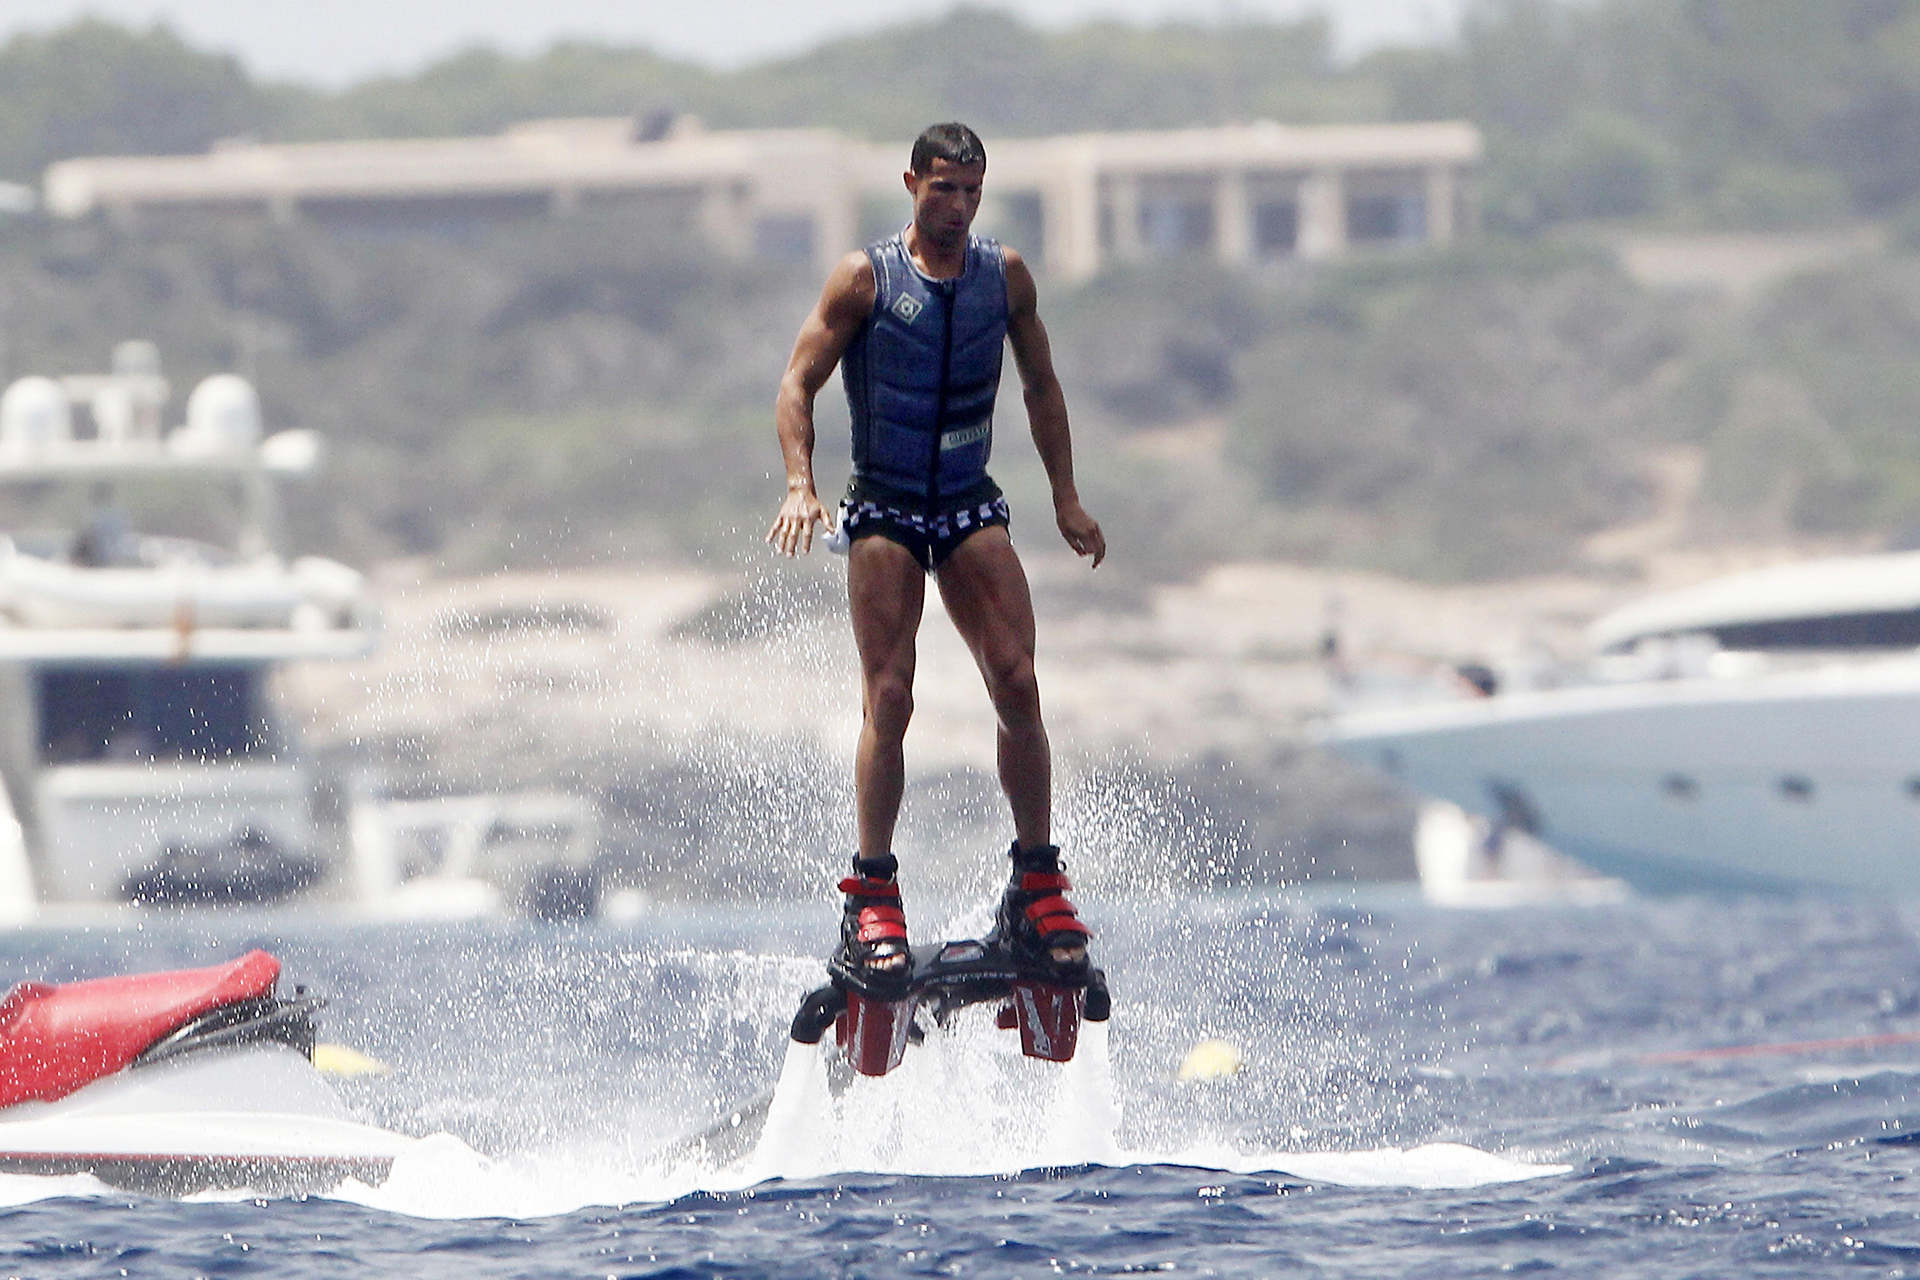 El portugués aprovechó para hacer flyboarding (Grosby Group)